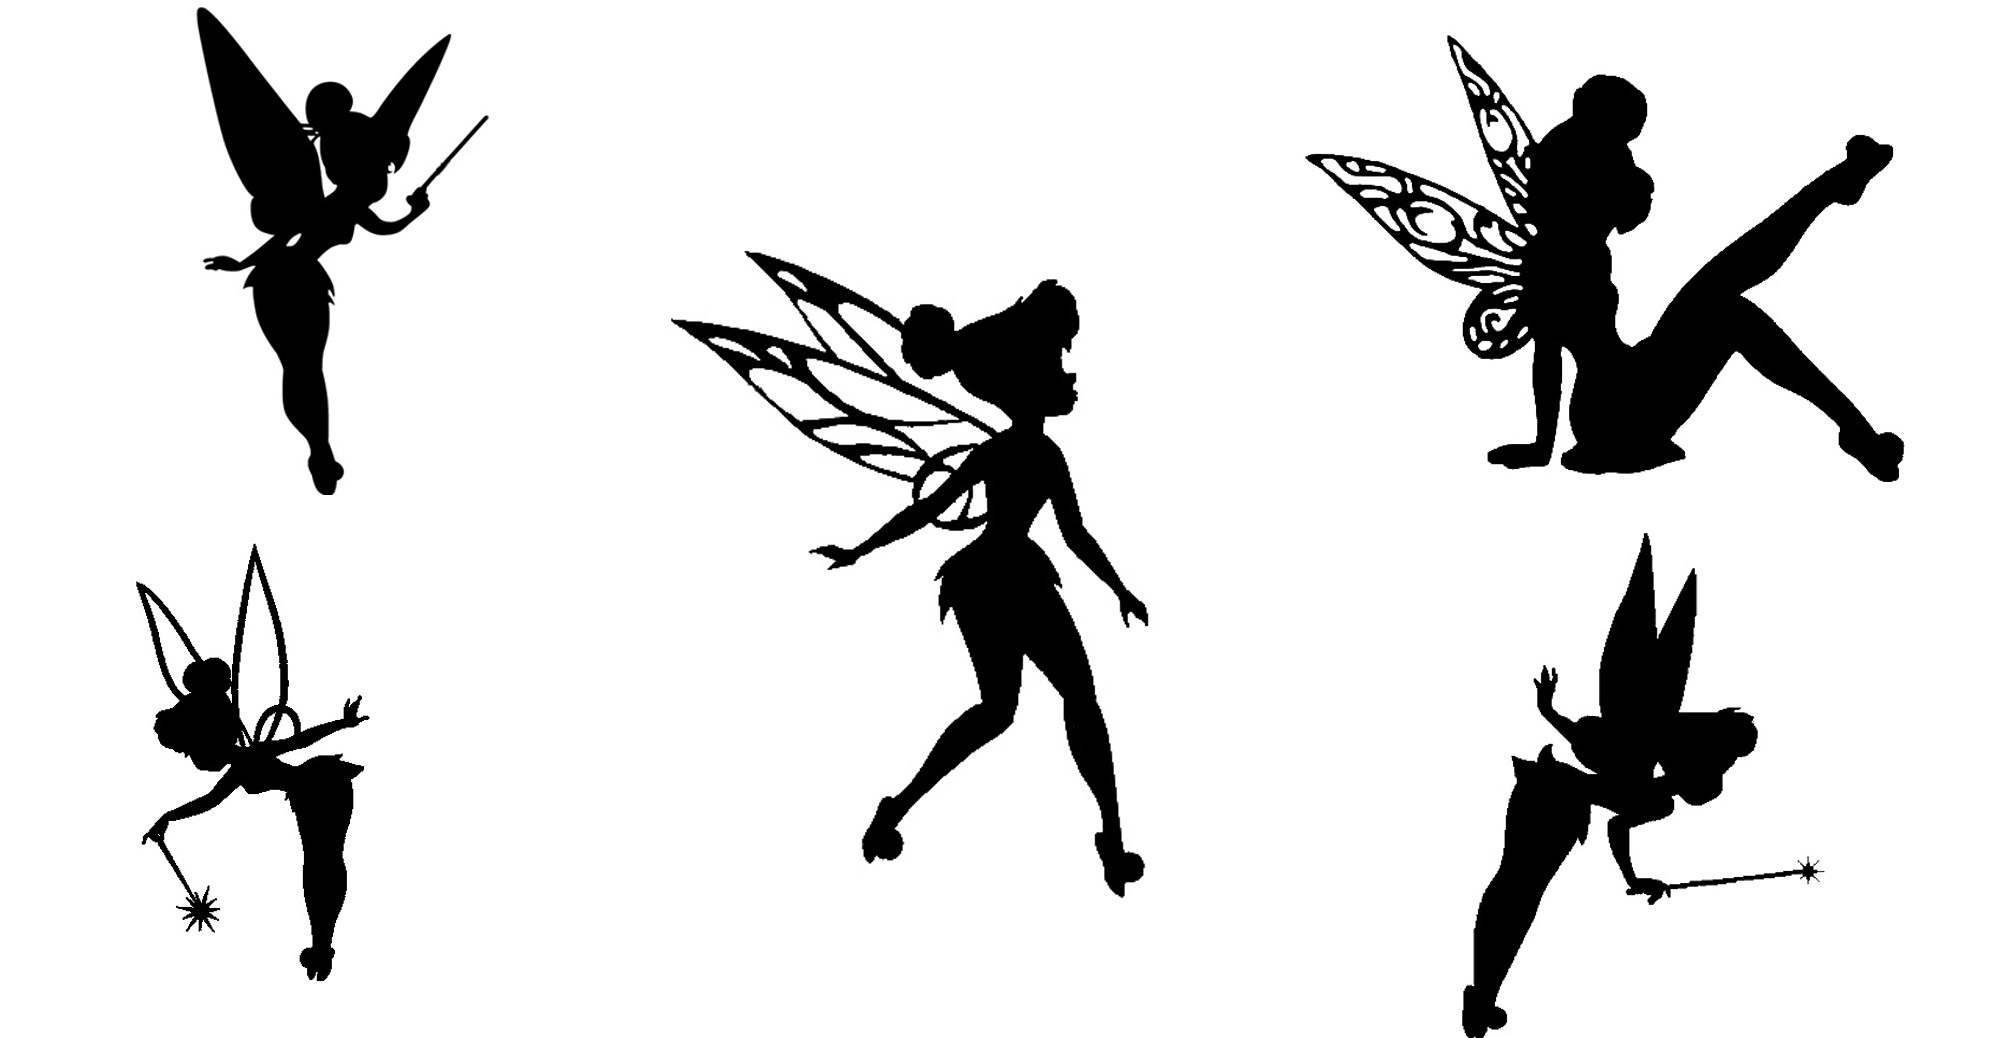 1994x1038 Tinkerbell Fairy Cutout Silhouette 15 Tinkerbell Die Cuts